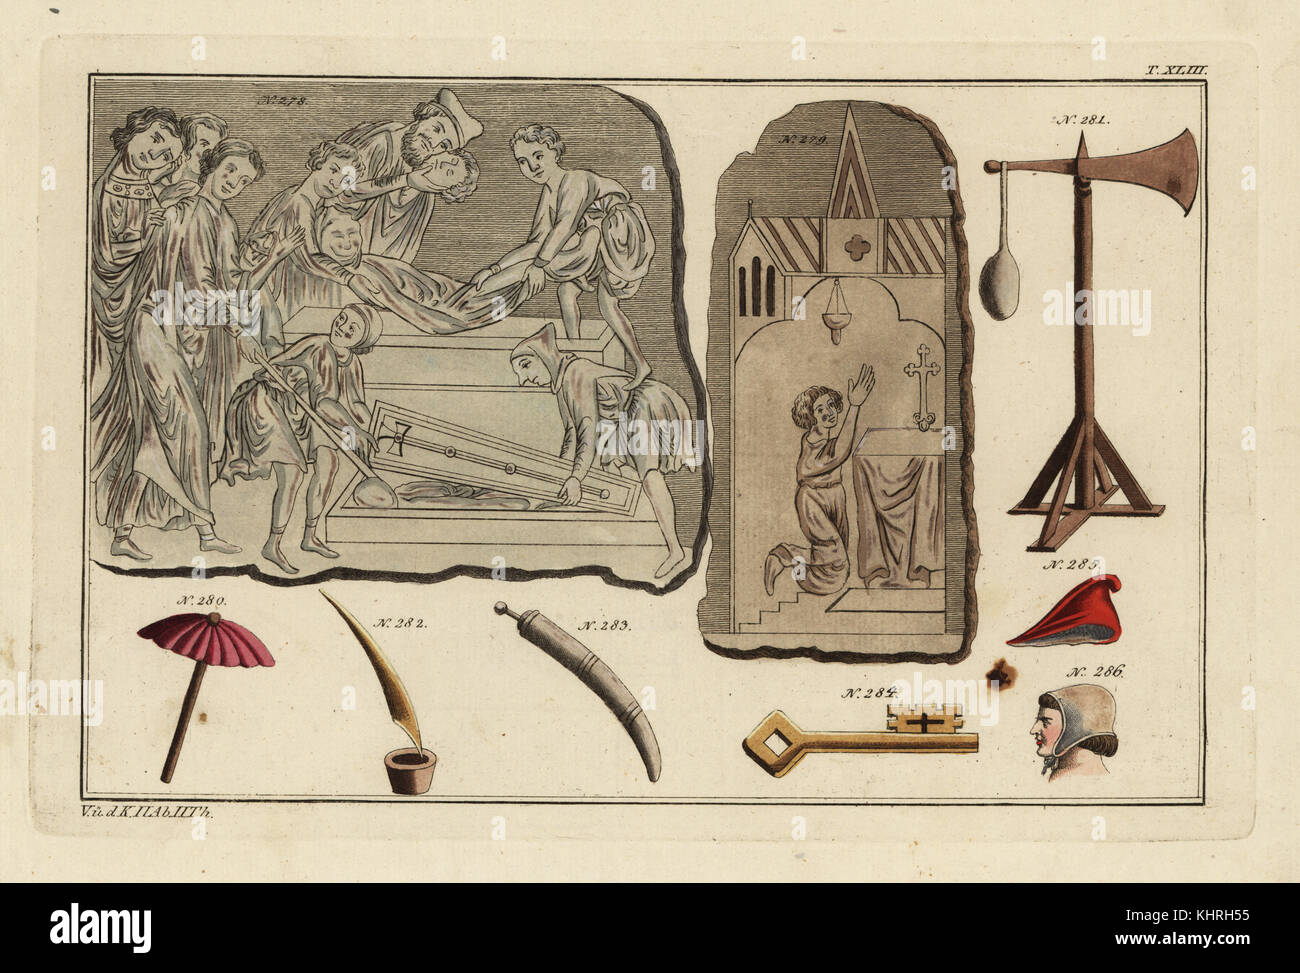 Norman funeral, chapel and equipment: a Norman funeral rite 278, Norman chapel with altar 279, umbrella 280, quintaine - Stock Image